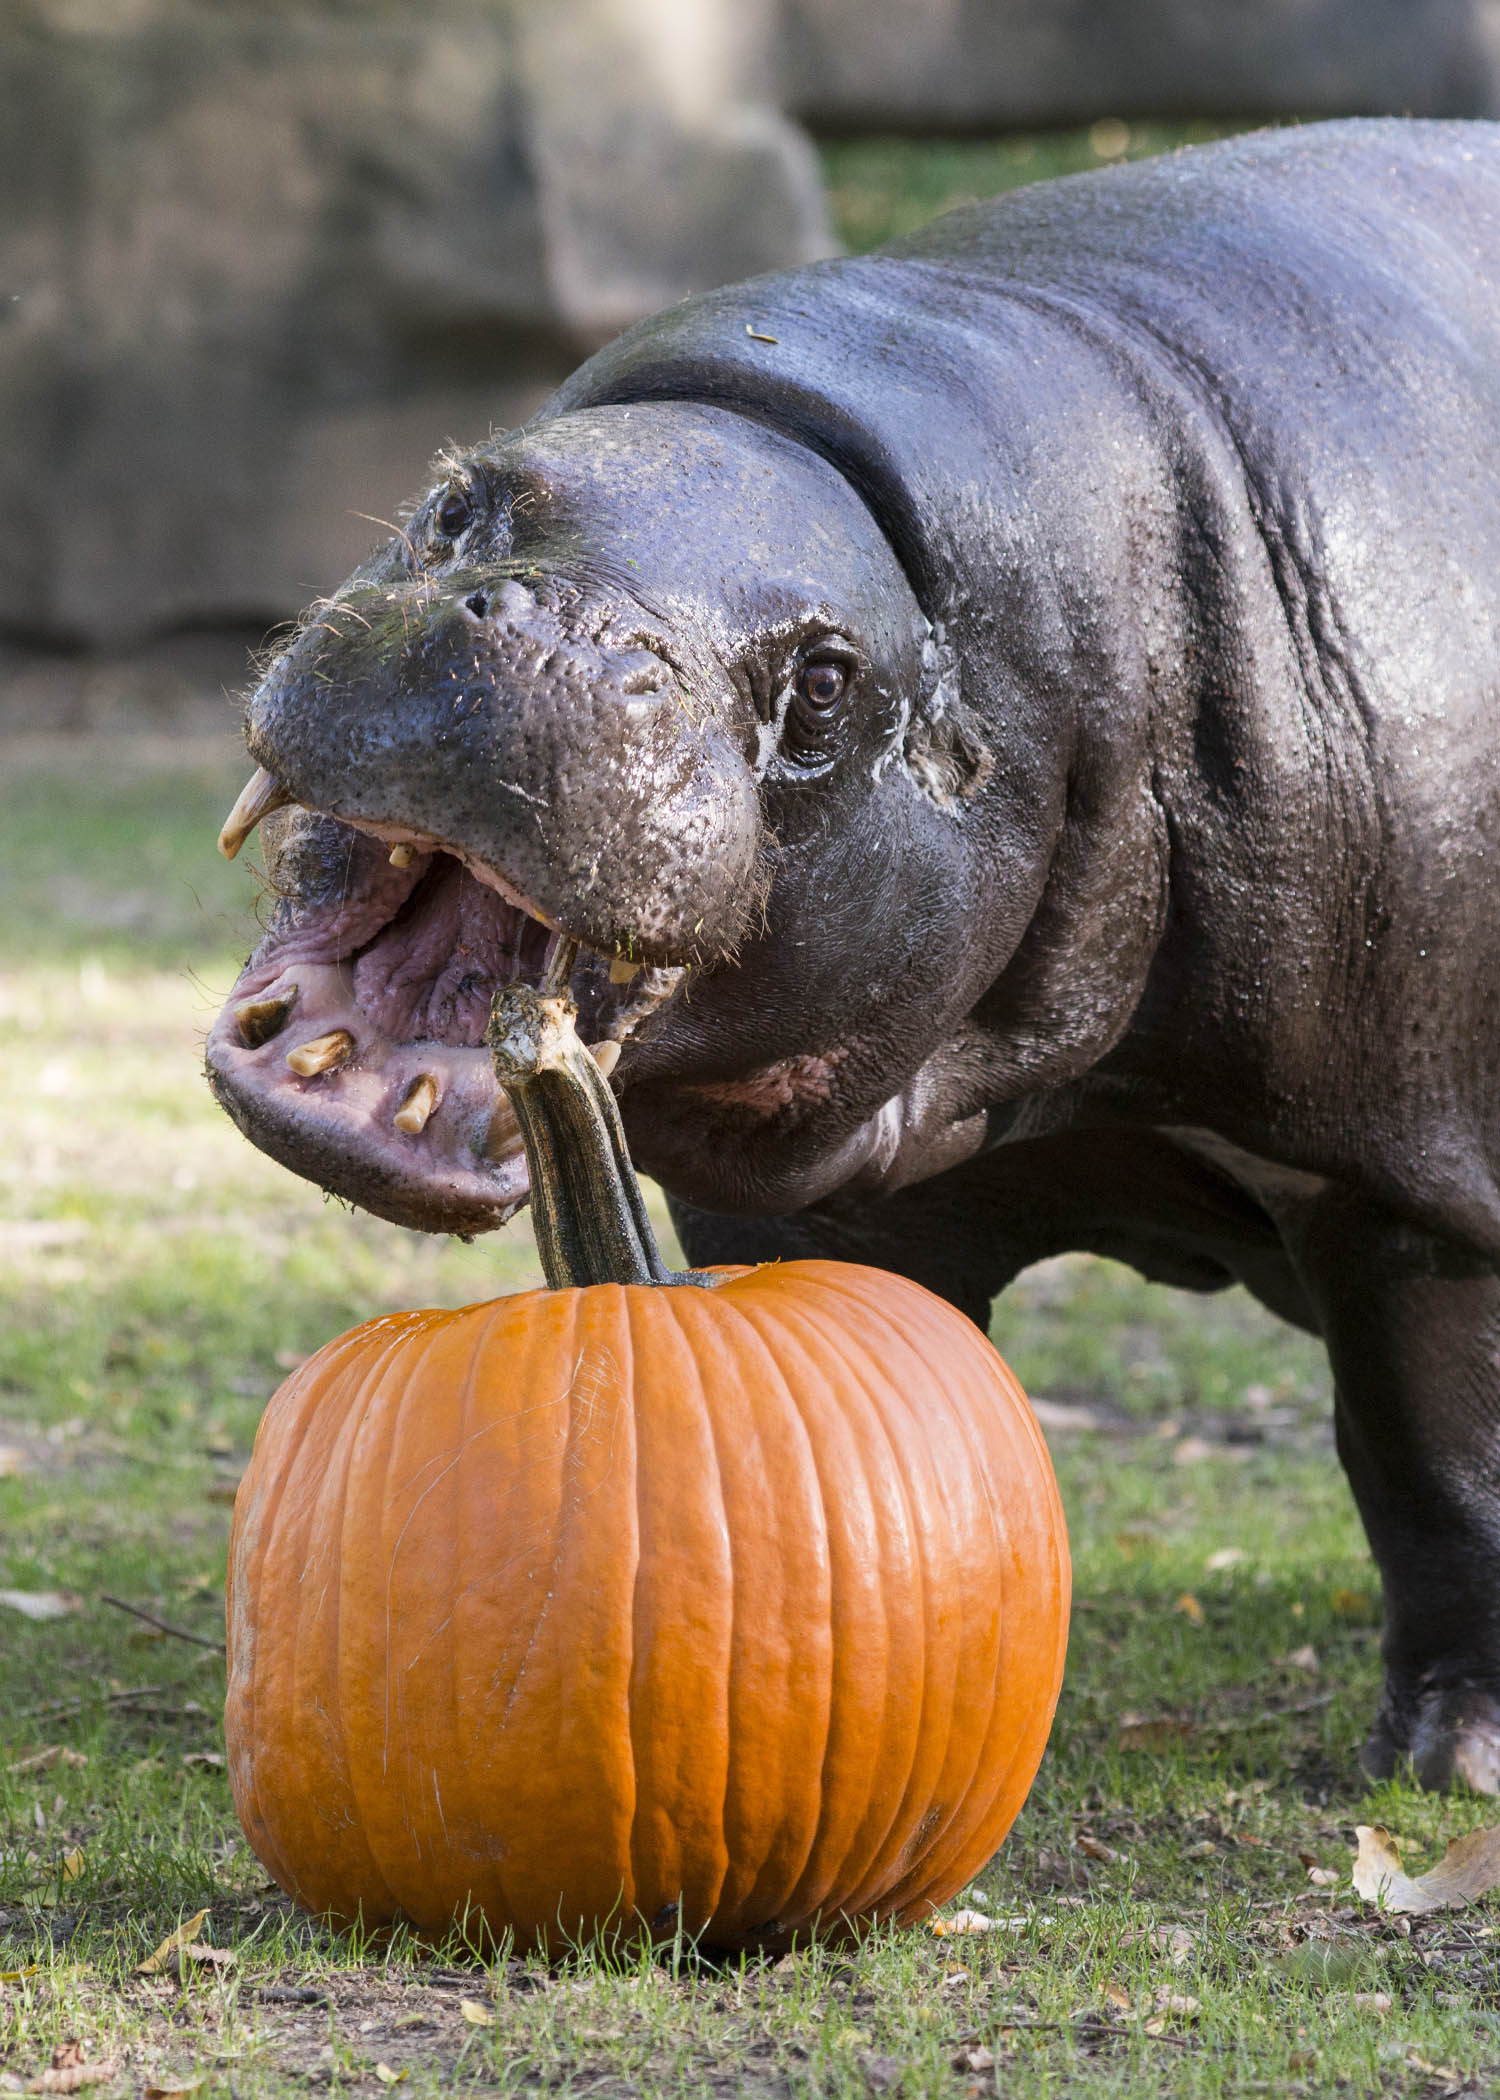 "<div class=""meta image-caption""><div class=""origin-logo origin-image wls""><span>WLS</span></div><span class=""caption-text"">Adelle, a 41-year-old pygmy hippo at Brookfield Zoo, gets ready to dig into a Halloween treat. (Kelly Tone/Chicago Zoological Society)</span></div>"